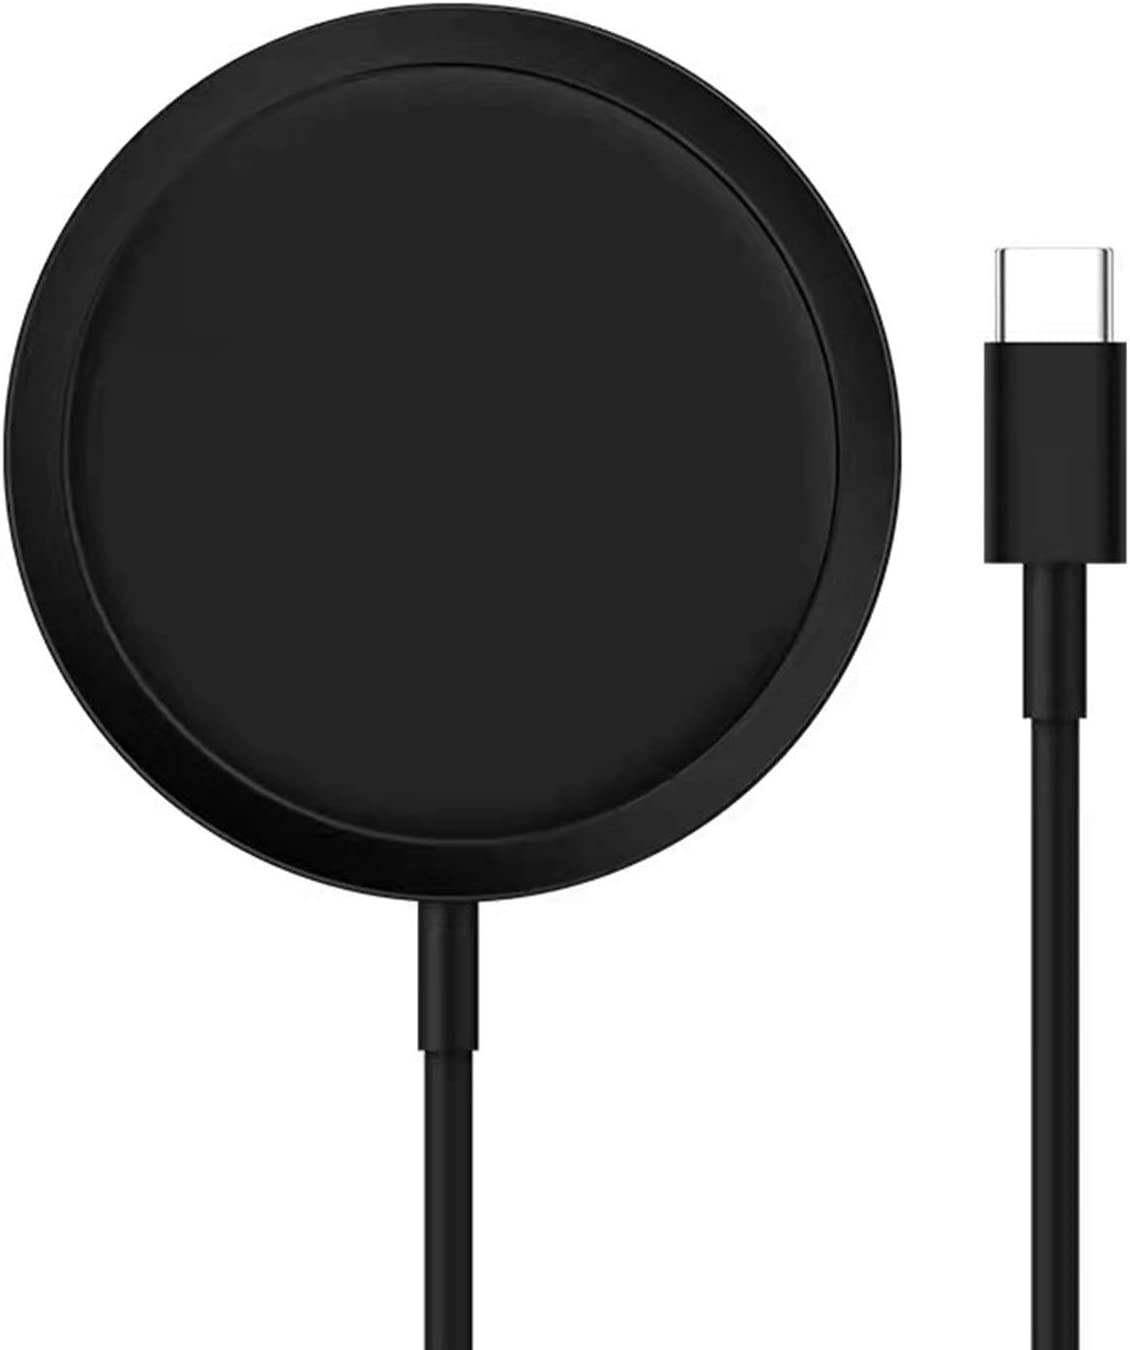 Wireless Charger Magnetic Black Fast Ultra Slim 15W Wireless Charging Station Qi-Certified,Universal Wireless Charging Station Pad Compatible for iPhone 12 and Other QI Devices(No AC Adapter,1 Pack)